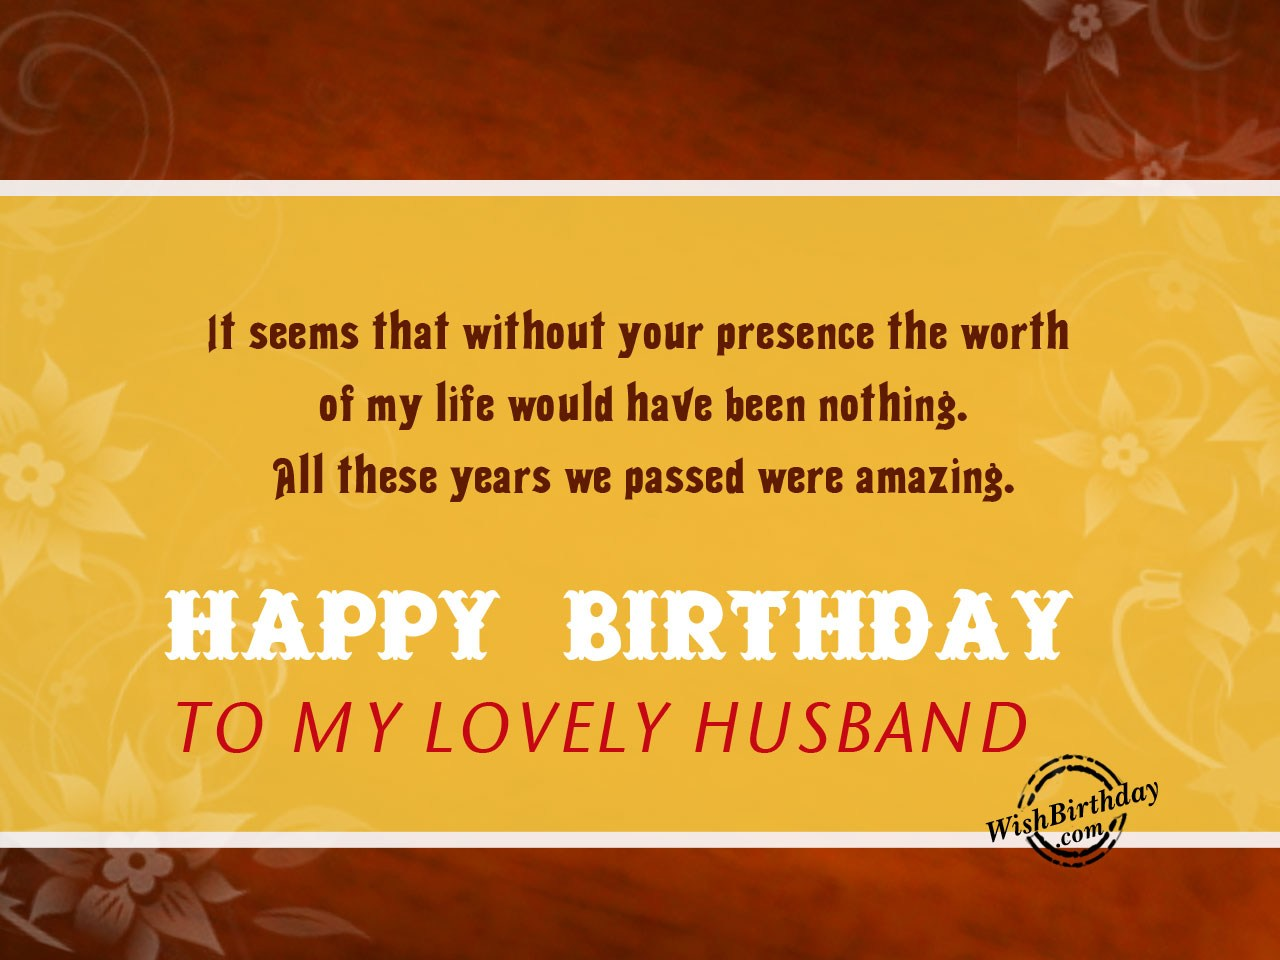 Birthday Wishes For Wife Islamic ~ Birthday wishes for husband birthday images pictures